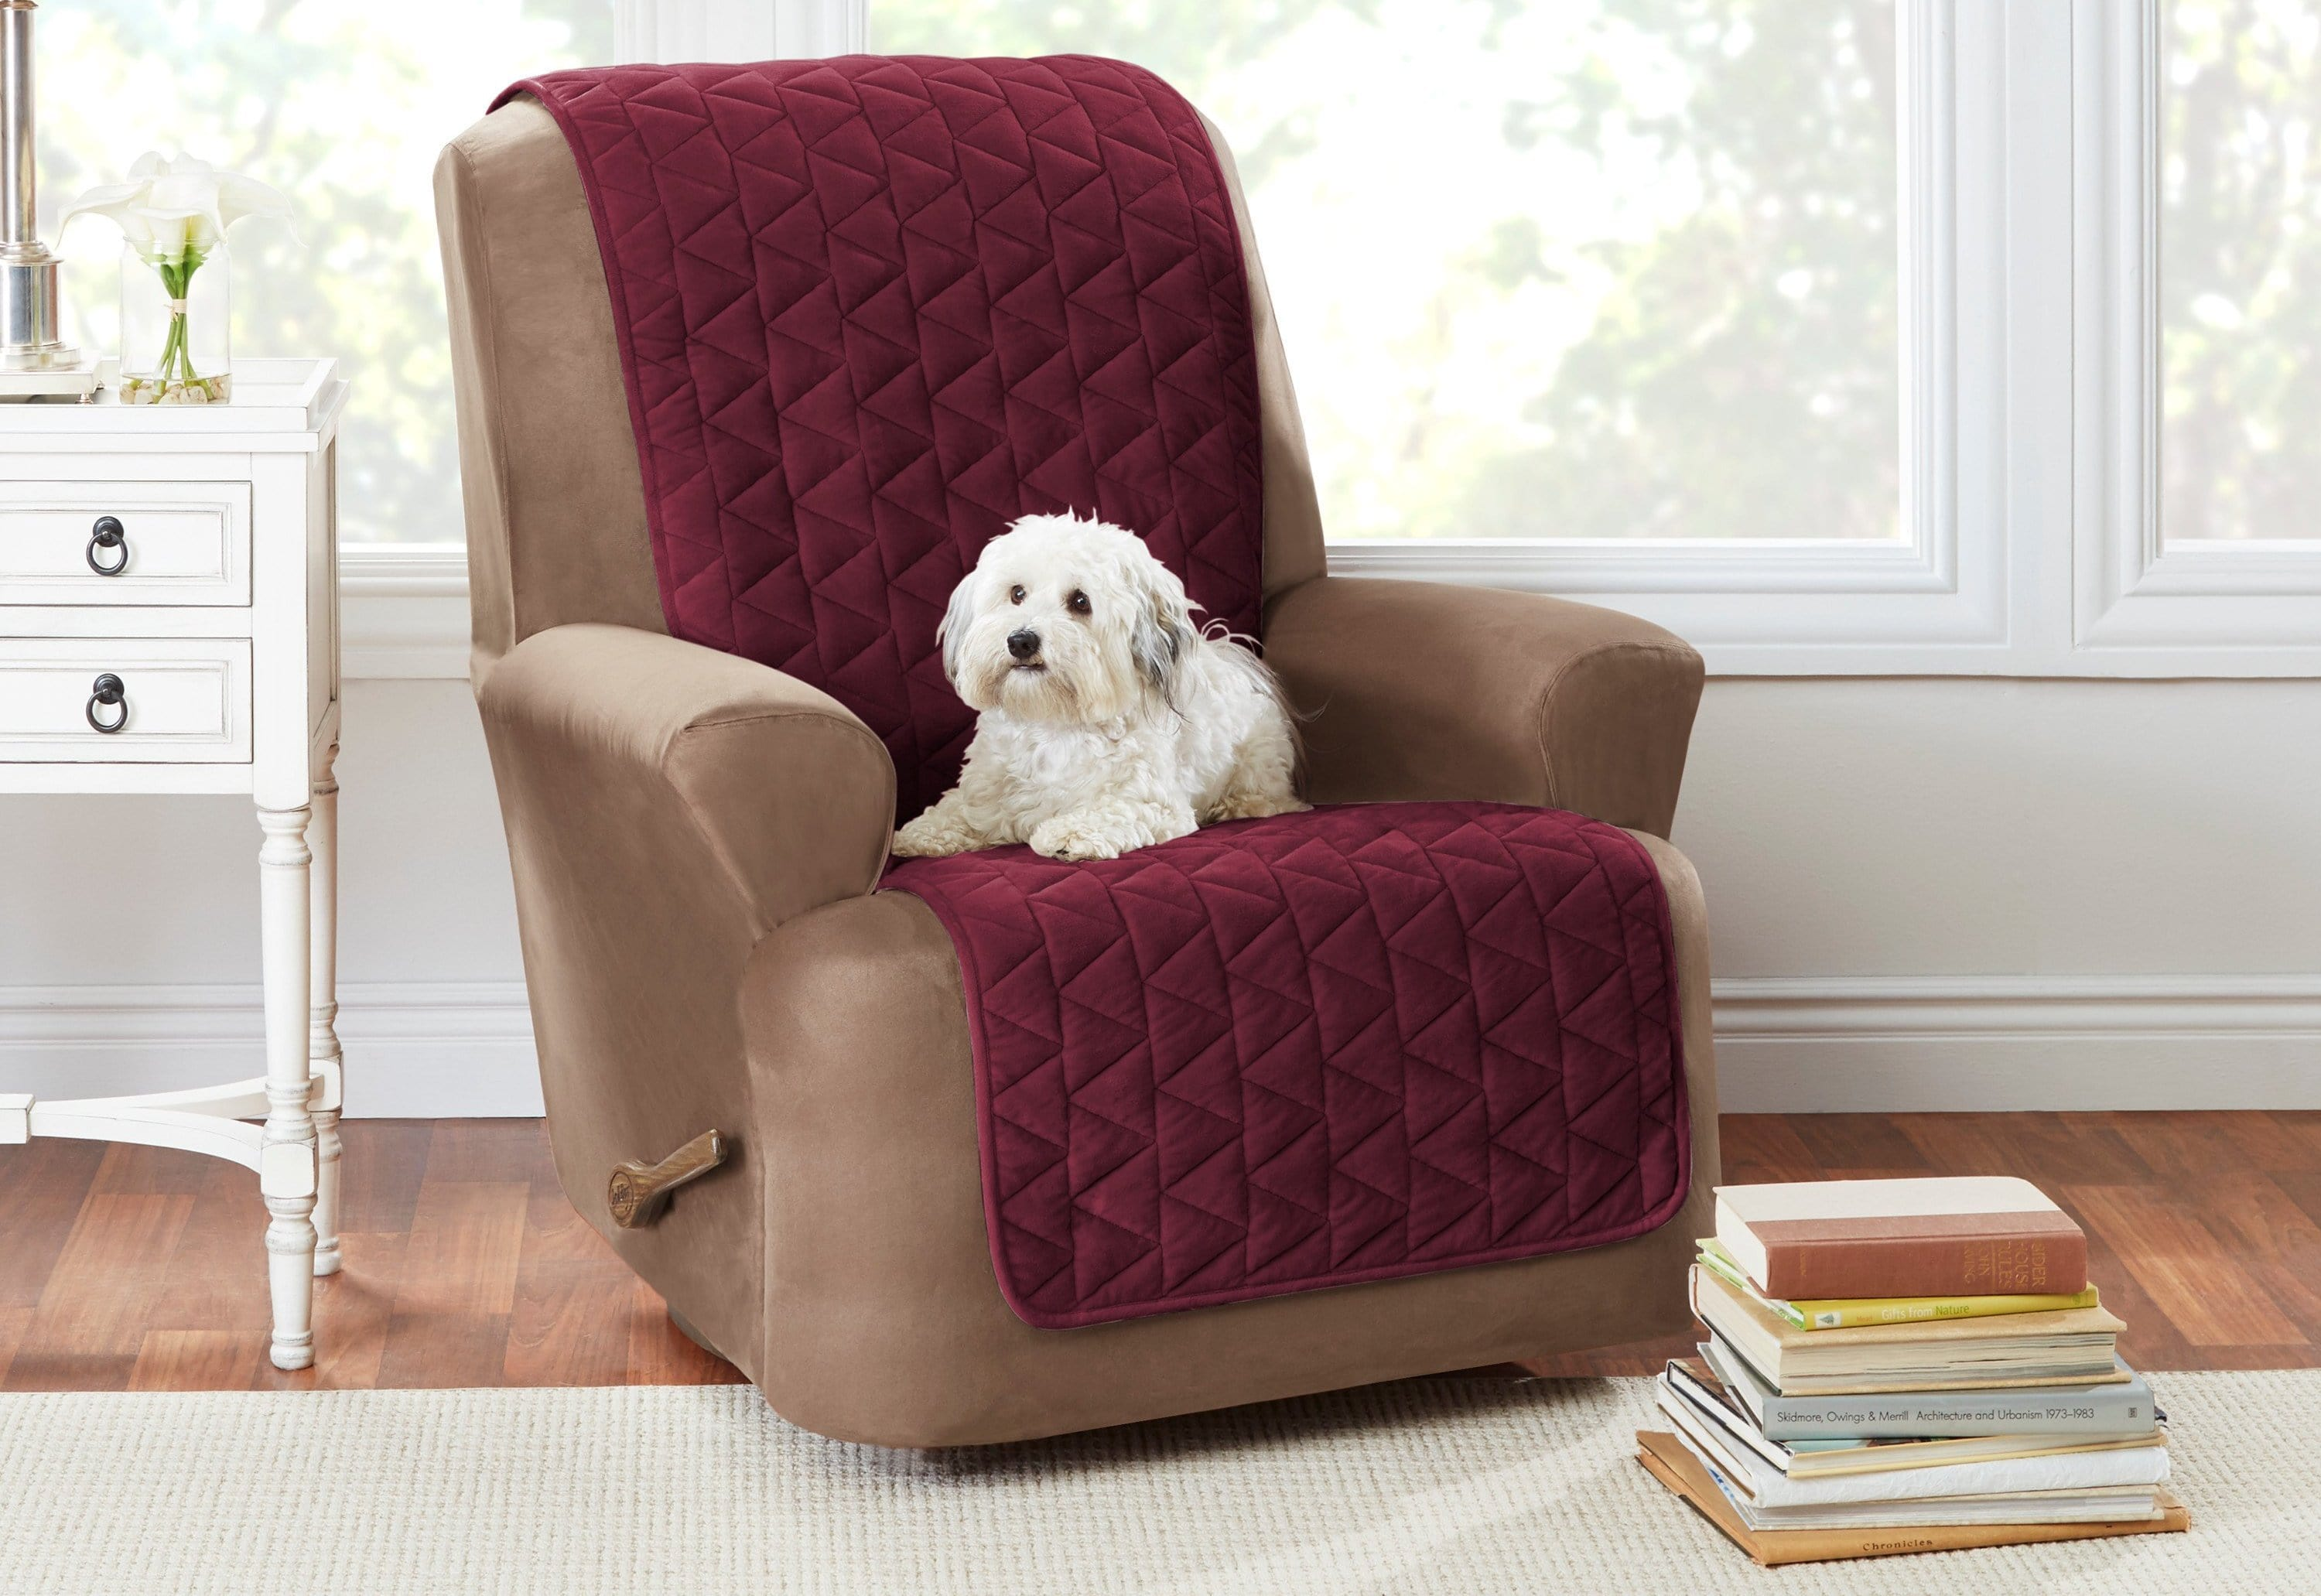 Armless Recliner Furniture Cover Pet Furniture Cover 100% Polyester Machine Washable - Recliner / Burgundy